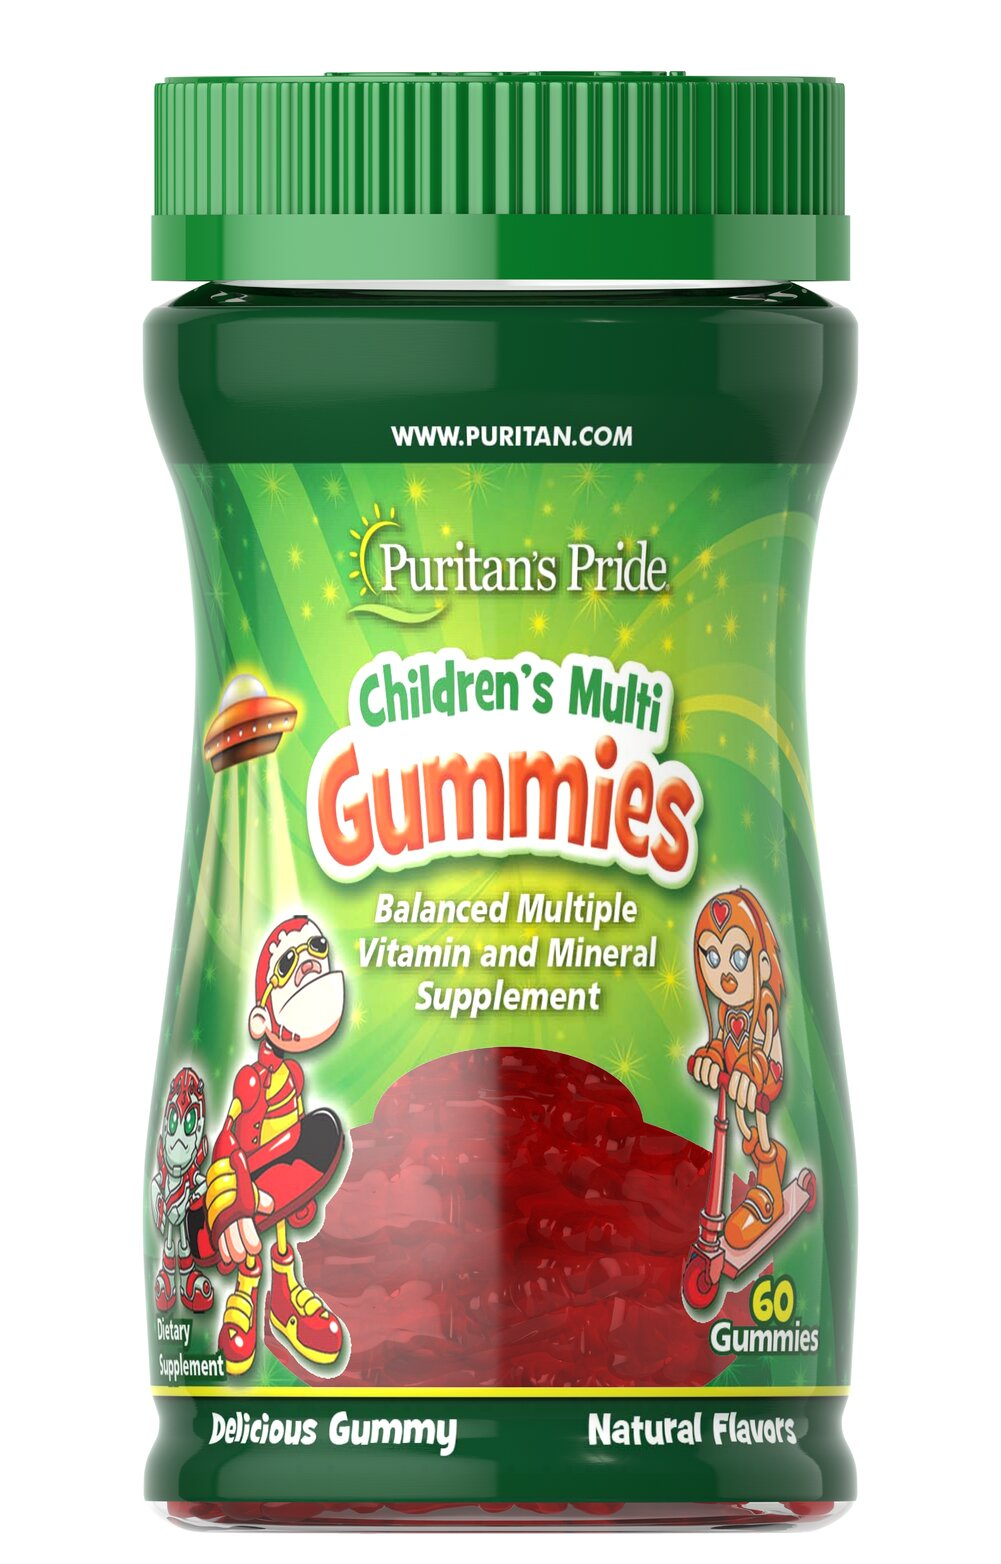 Children's Multivitamins & Minerals Gummies <p>These multivitamins gummies are packed with essential vitamins and minerals necessary for your child's healthy growth and development.** Included are Vitamin D for the bones, and Vitamins C and E for the immune system.**</p> 60 Gummies  $8.99